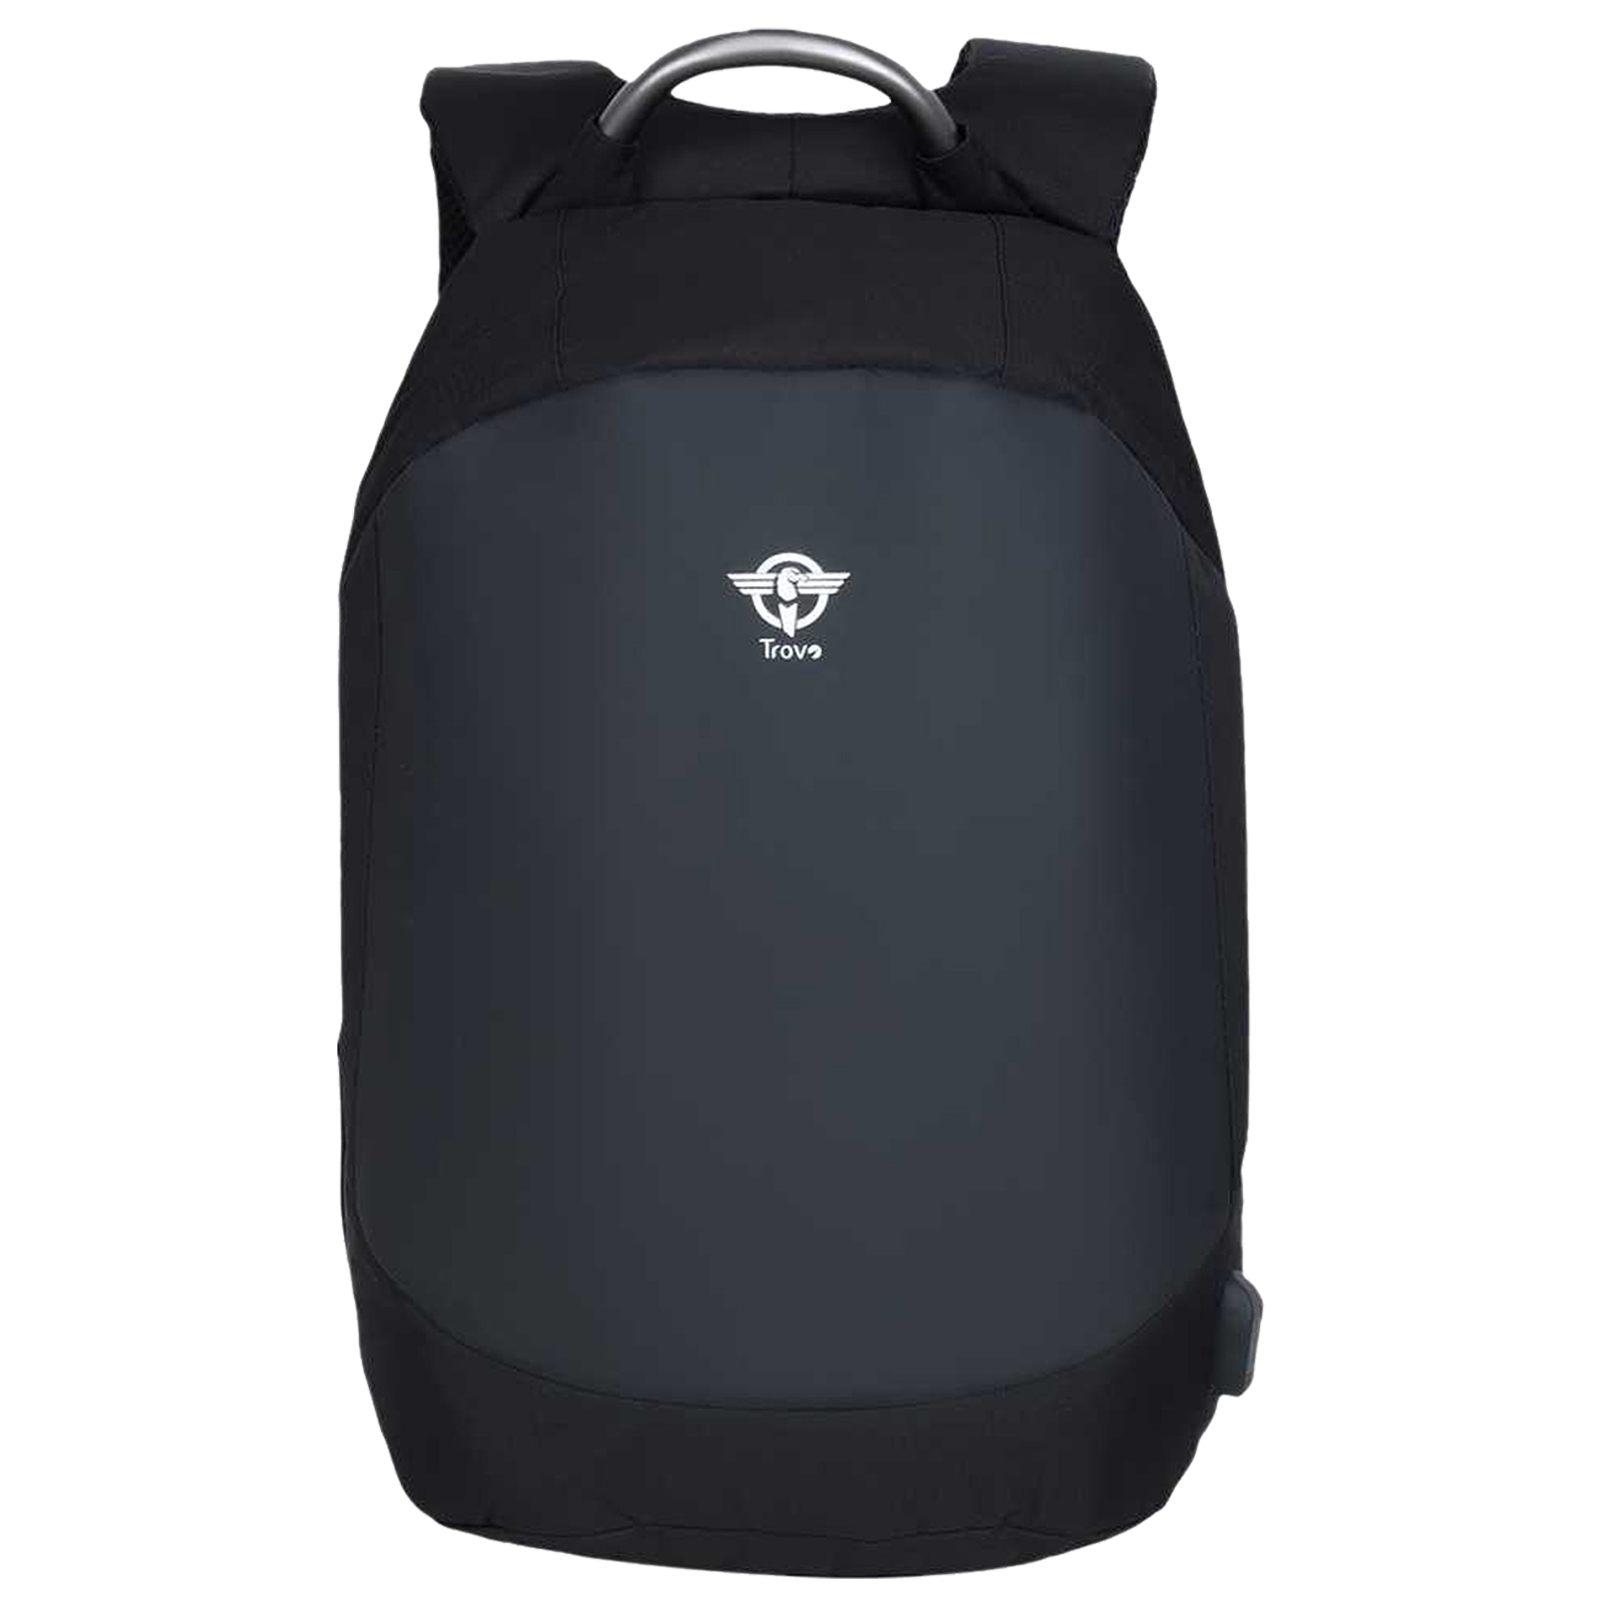 Trovo Champ 40 Litres Polyester Backpack for 15.6 Inch Laptop (Shock Proof, TLB-83-BLACK, Black)_1